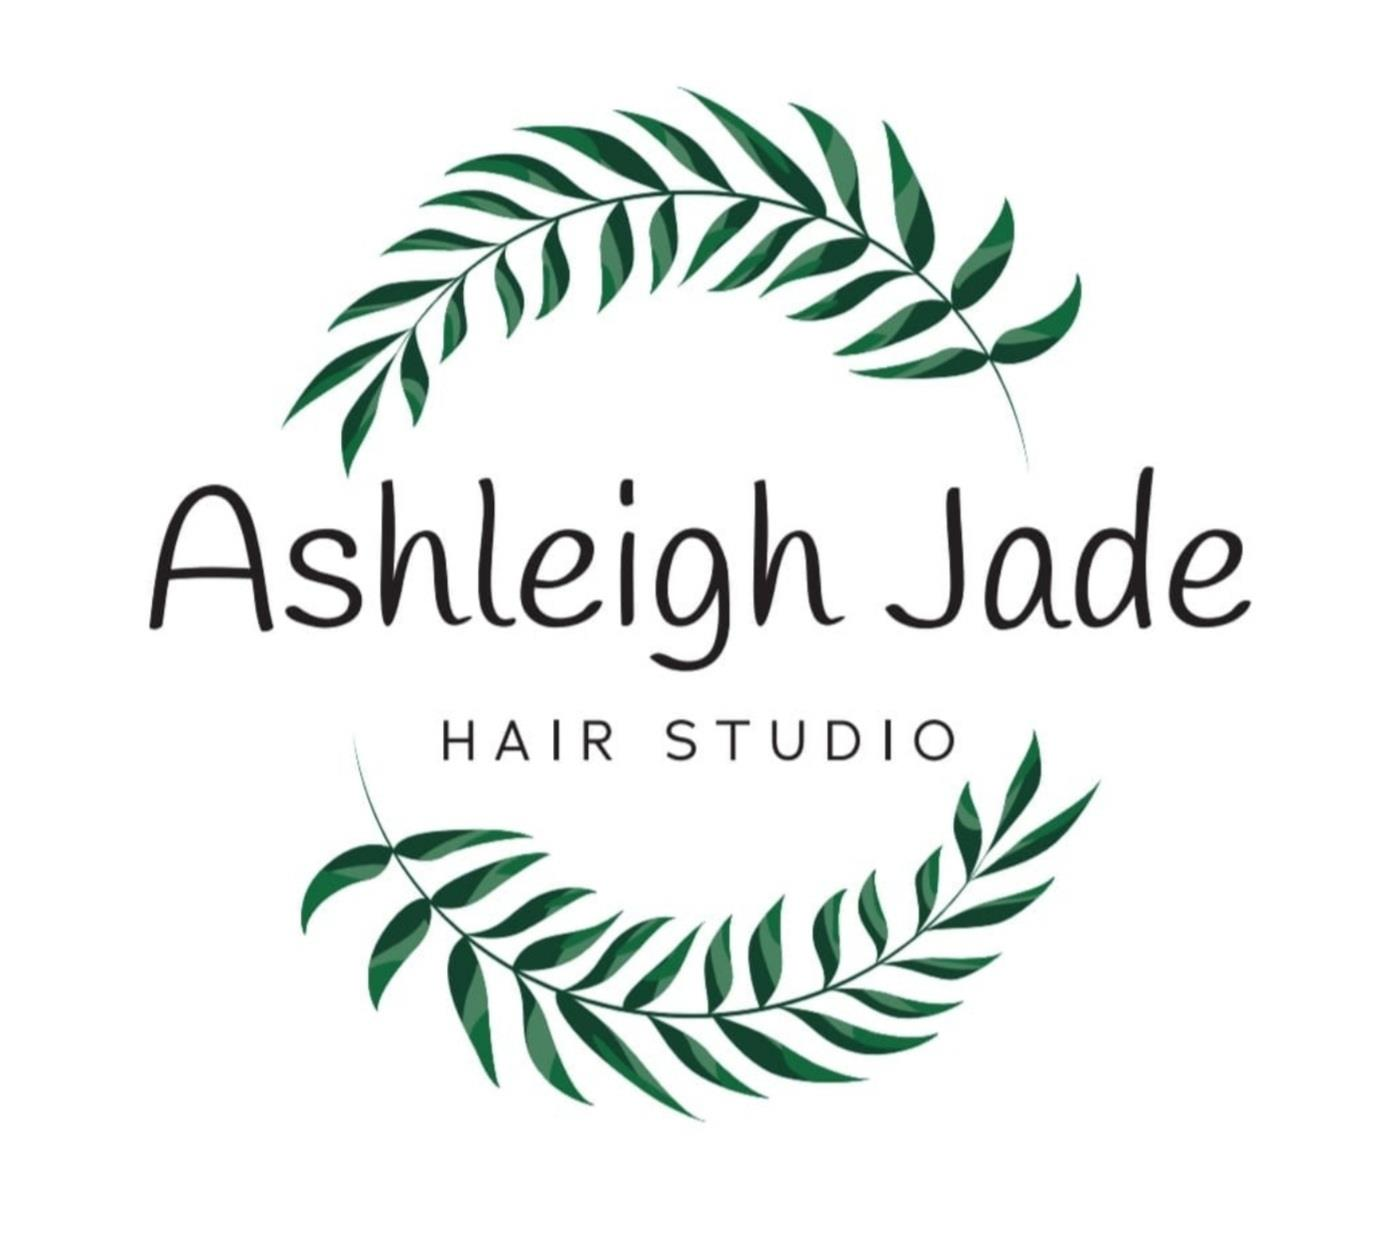 Ashleigh Jade Hair Studio